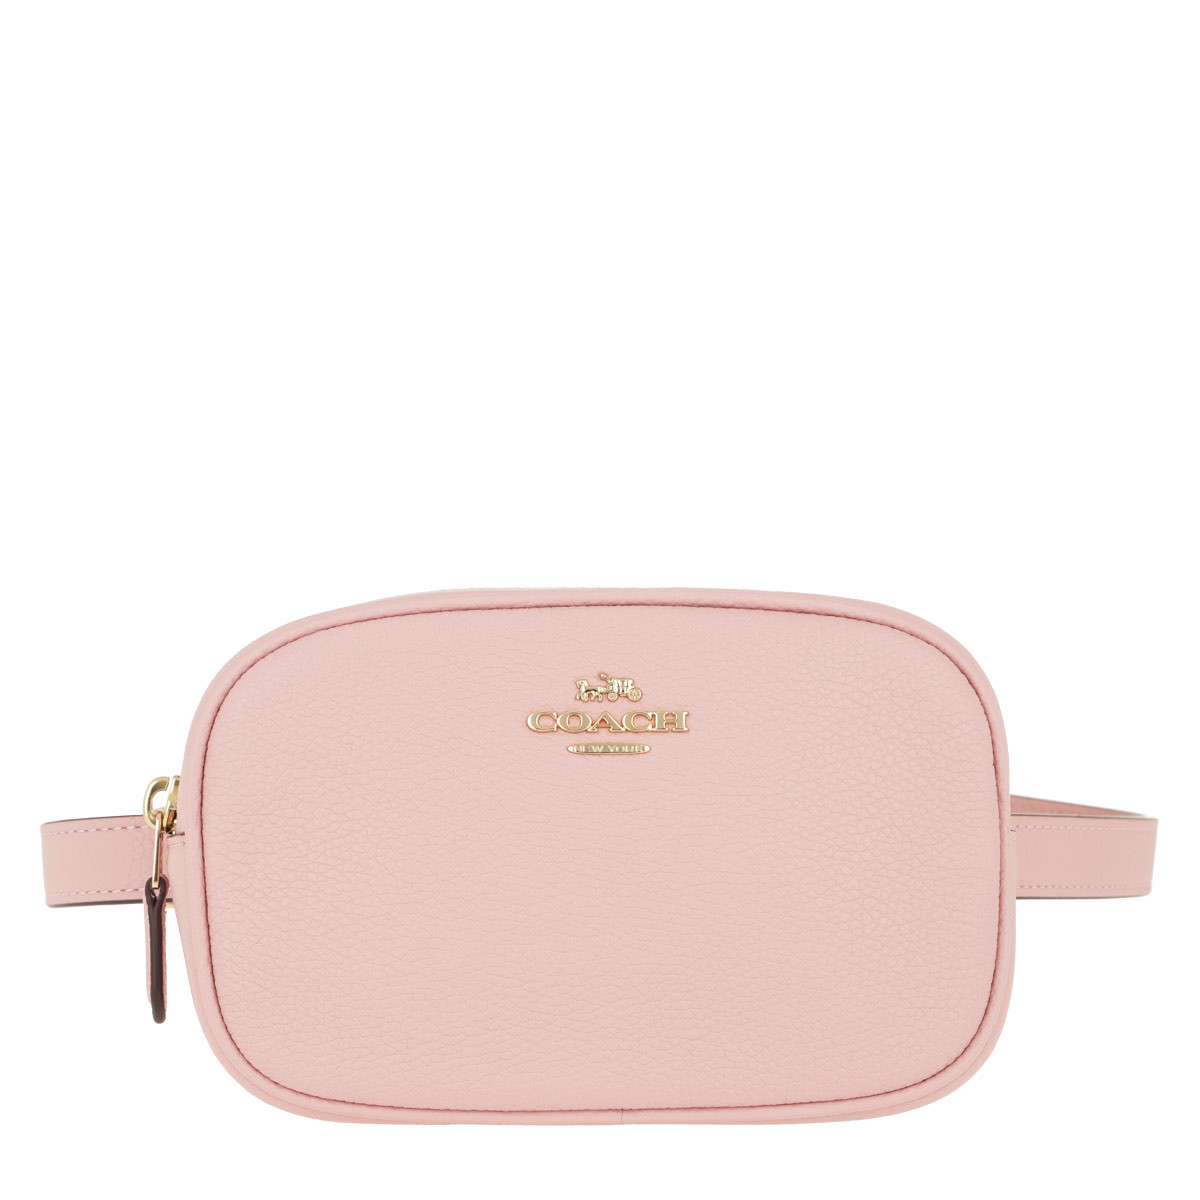 Coach Gürteltasche - Polished Pebble Dressy Belt Bag Pink - in rosa - für Damen